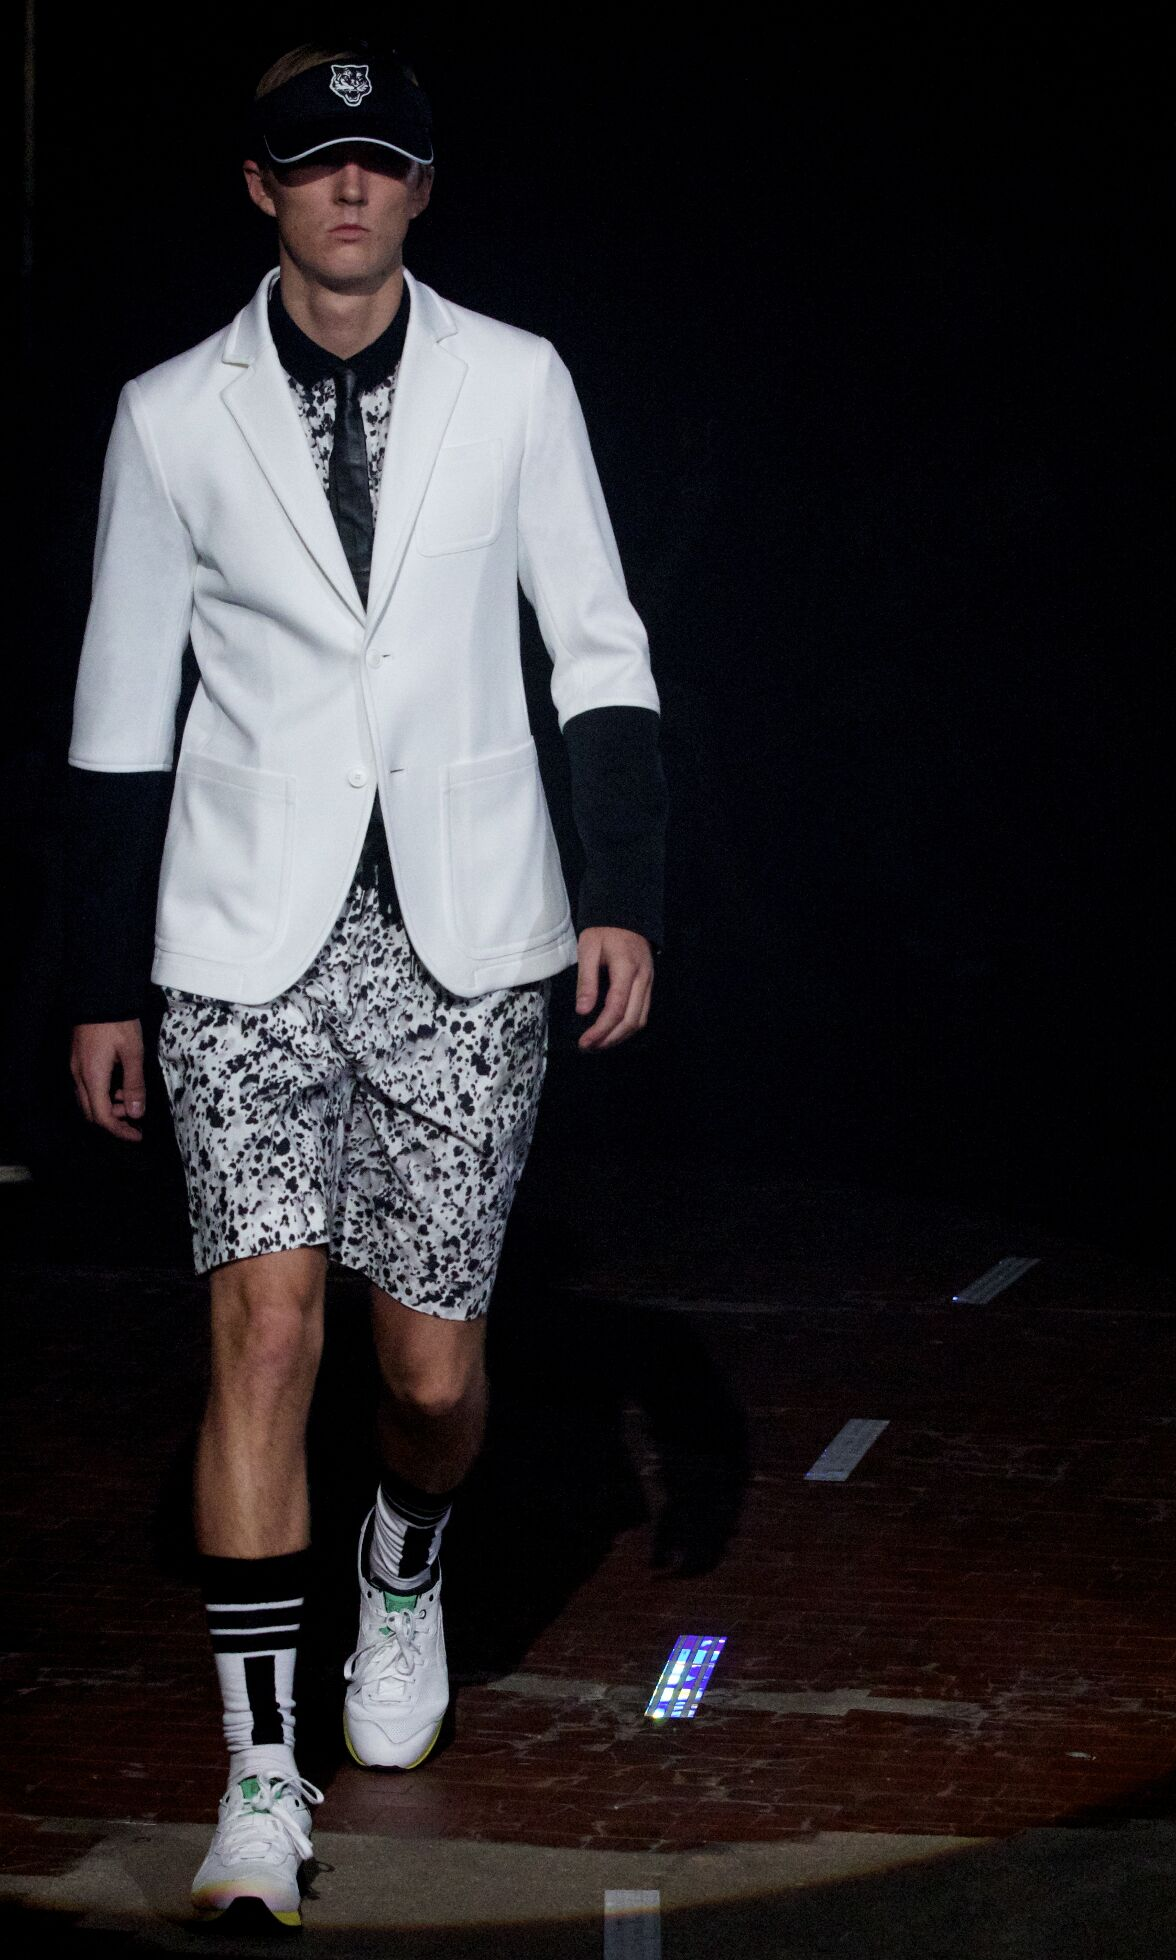 Onitsuka Tiger X Andrea Pompilio Spring Summer 2014 Collection Pitti Immagine Uomo Florence